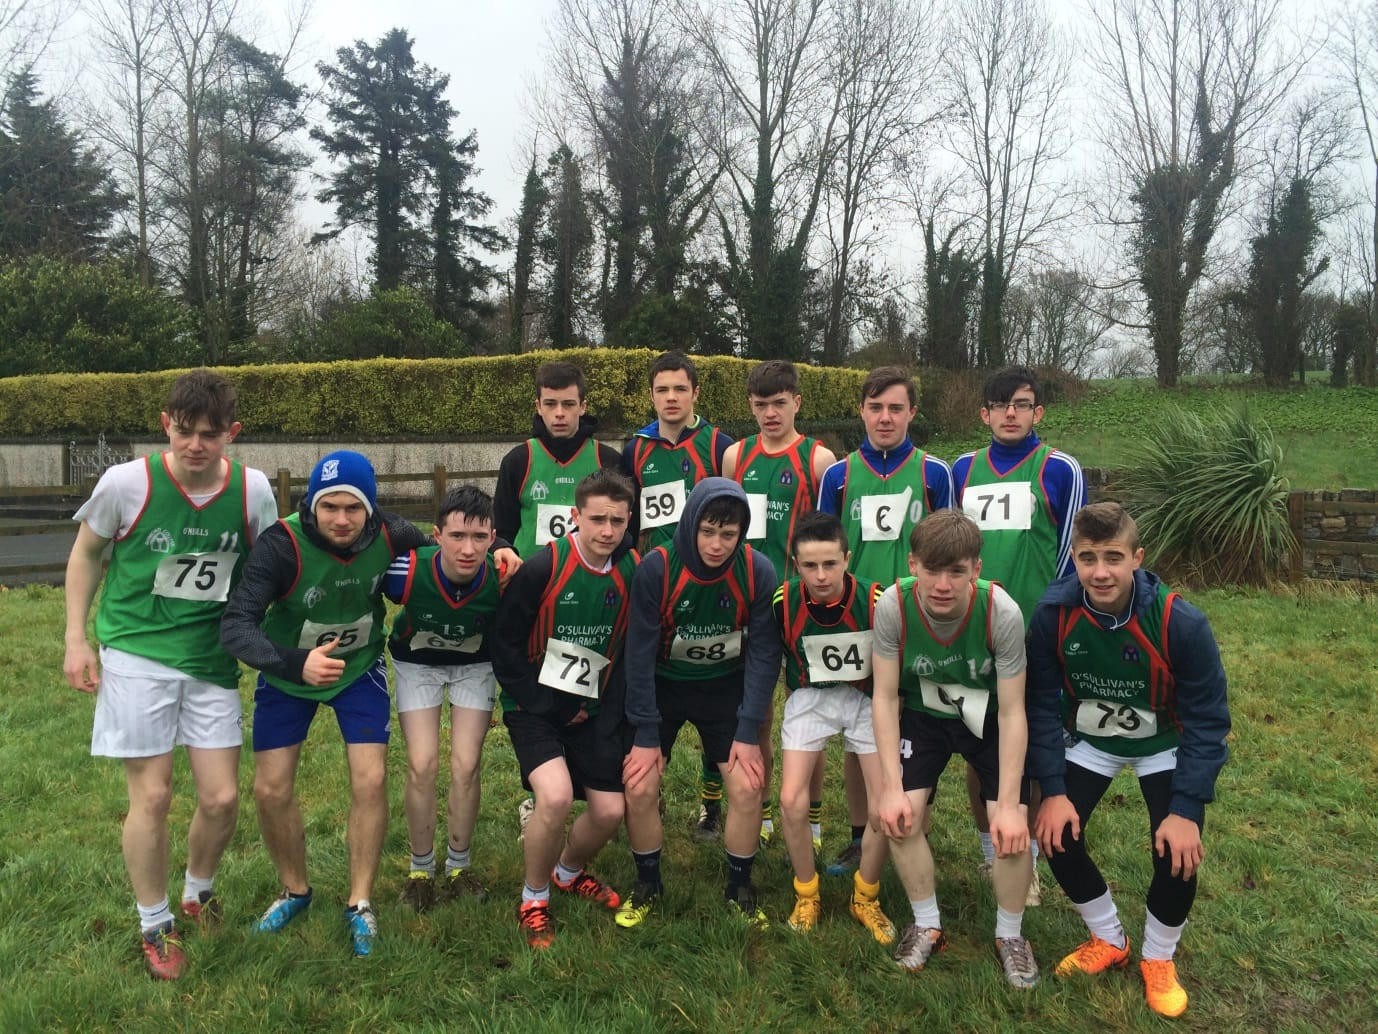 Desmond College Boys U17 Cross Country Team keeping warm ahead of their race at the North Munster Championships